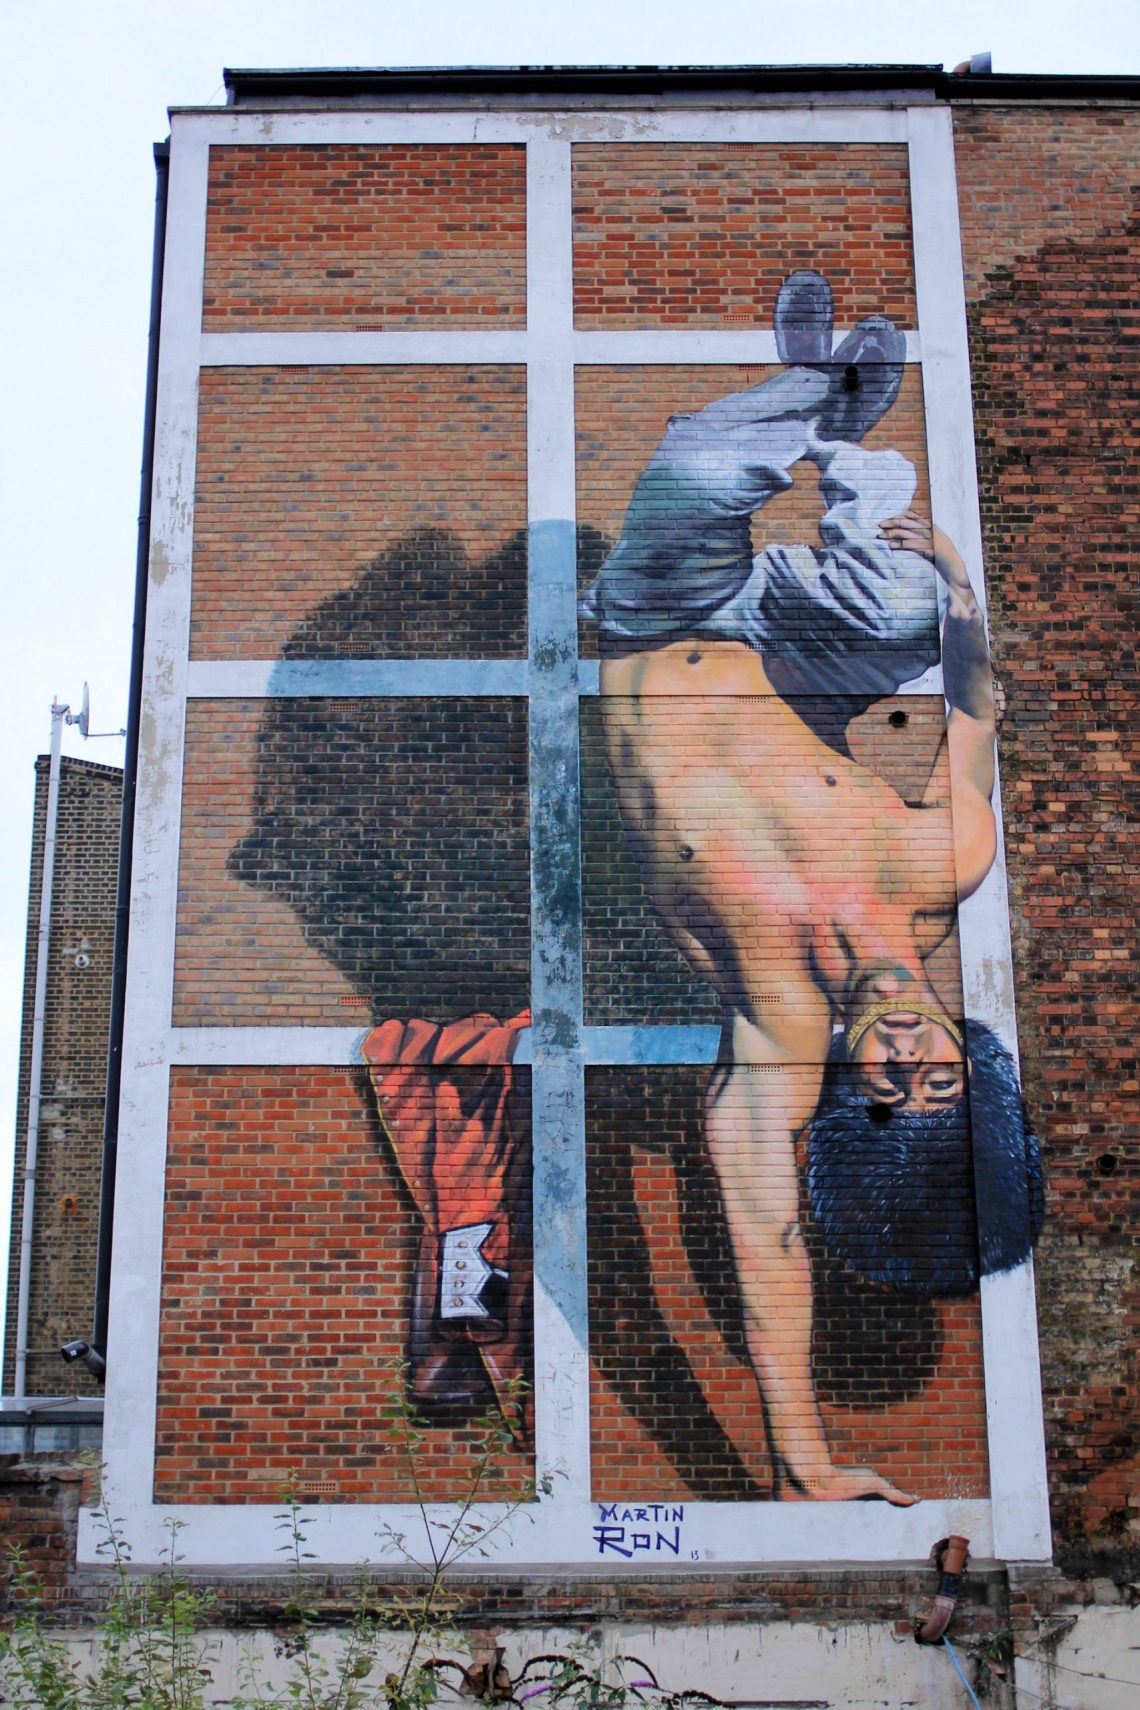 Happy Hour Mural depicting a Queens Guard doing the Capoeira in London. The mural is by Martin Ron